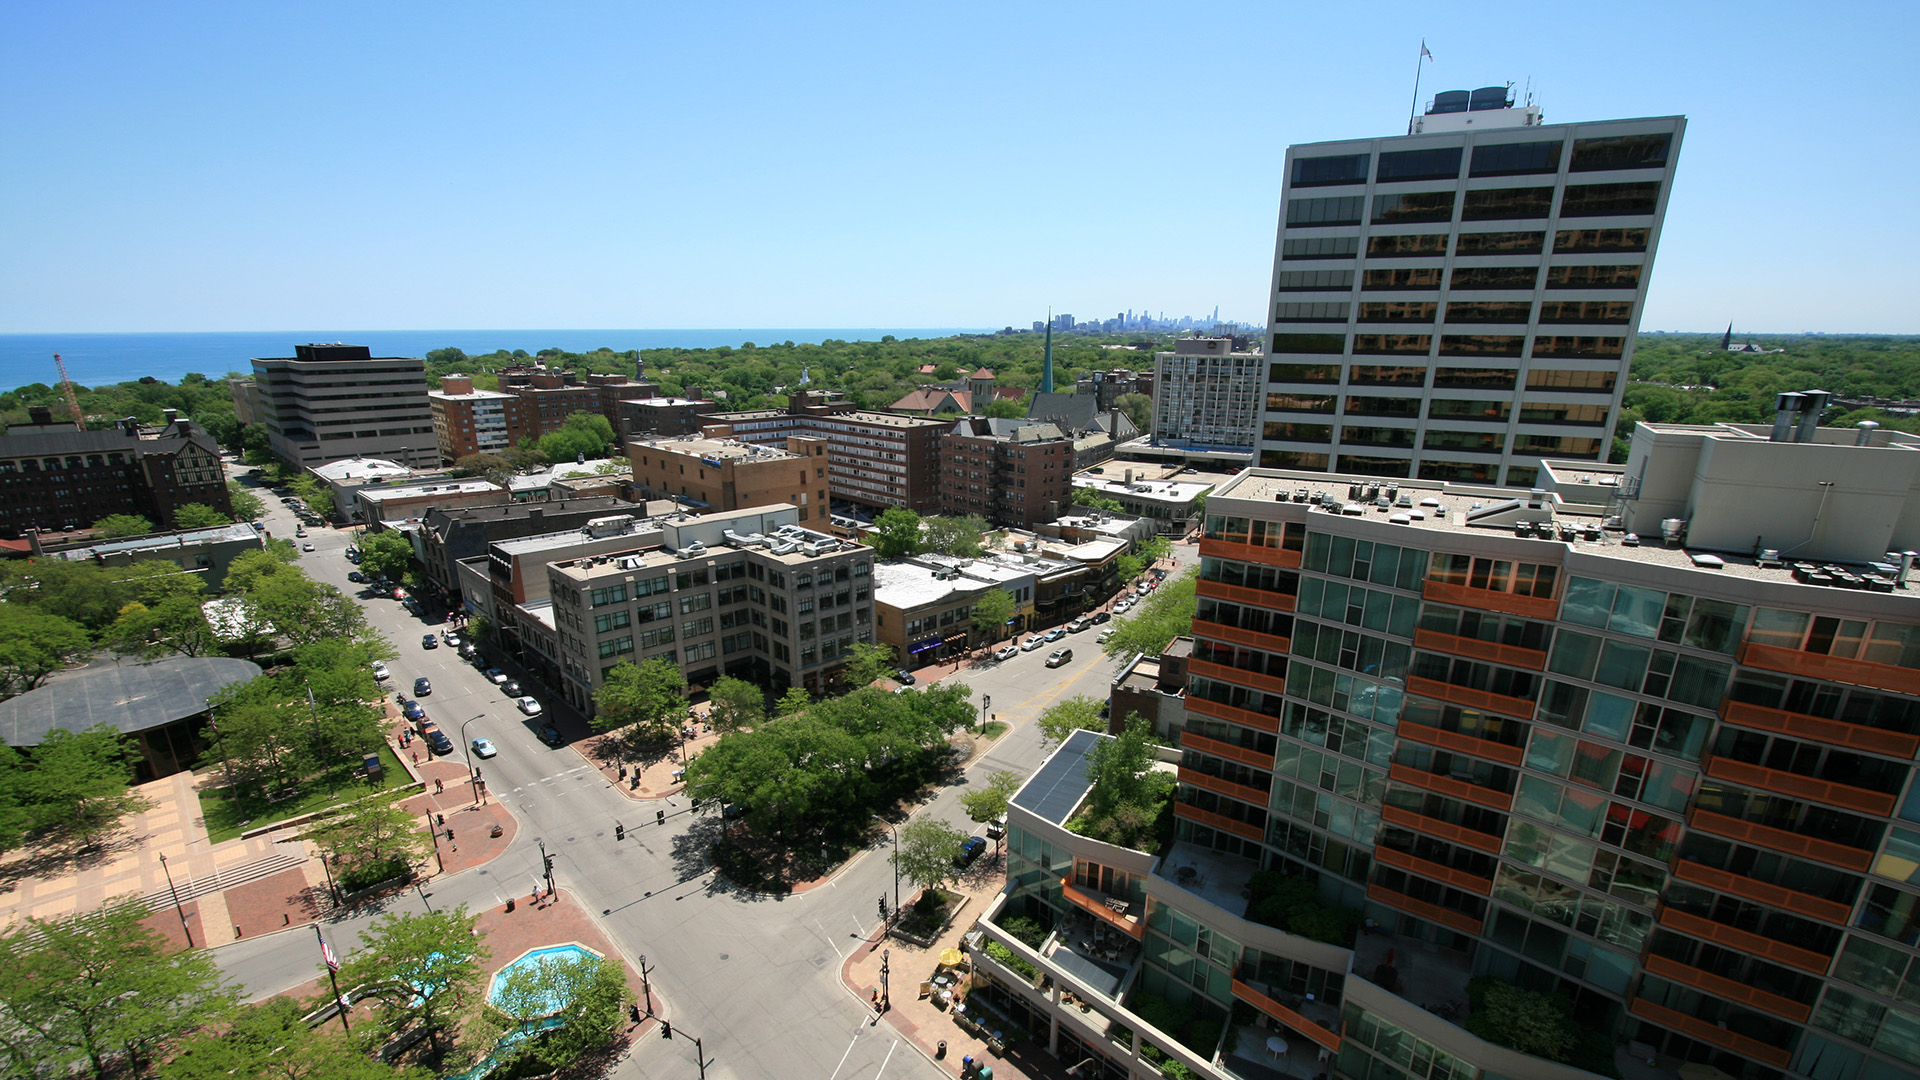 A high view of buildings around Fountain Square in downtown Evanston, Illinois, with the skyline of Chicago in the distance.